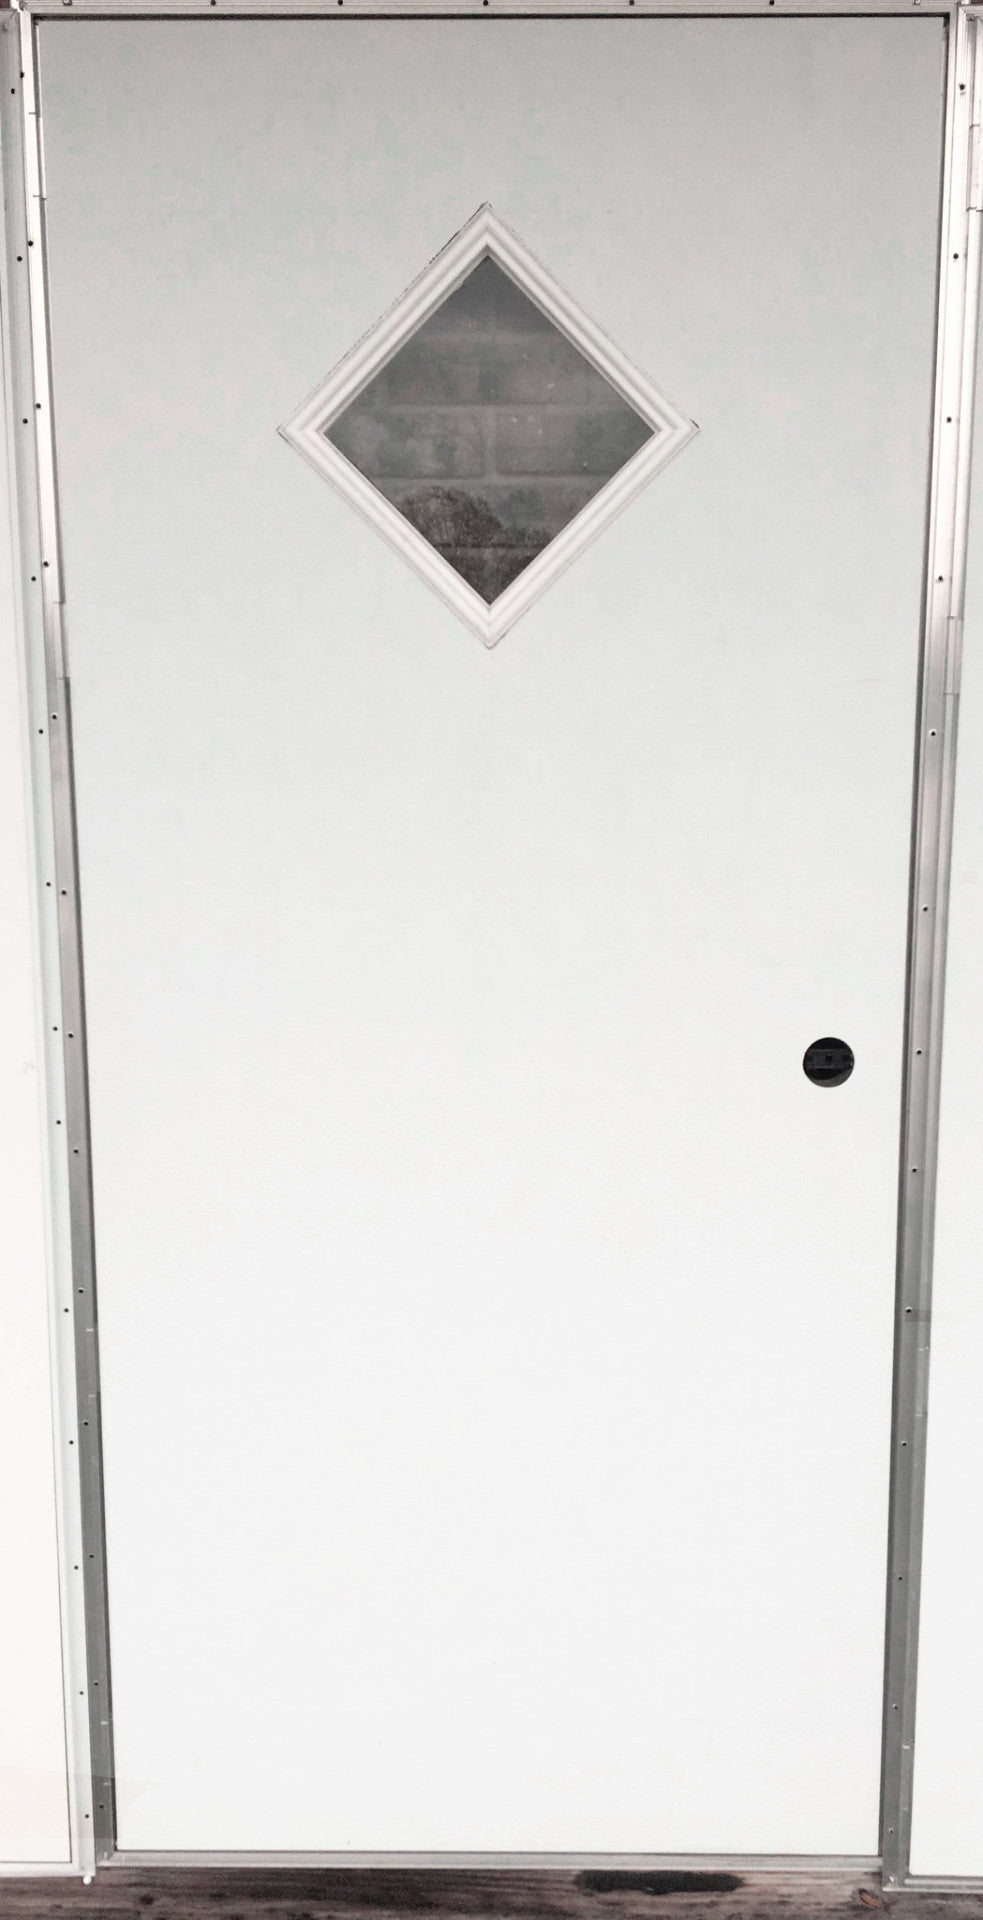 Charmant Elixir Series 200 Exterior Outswing Door With Diamond Window L/H Or R/H